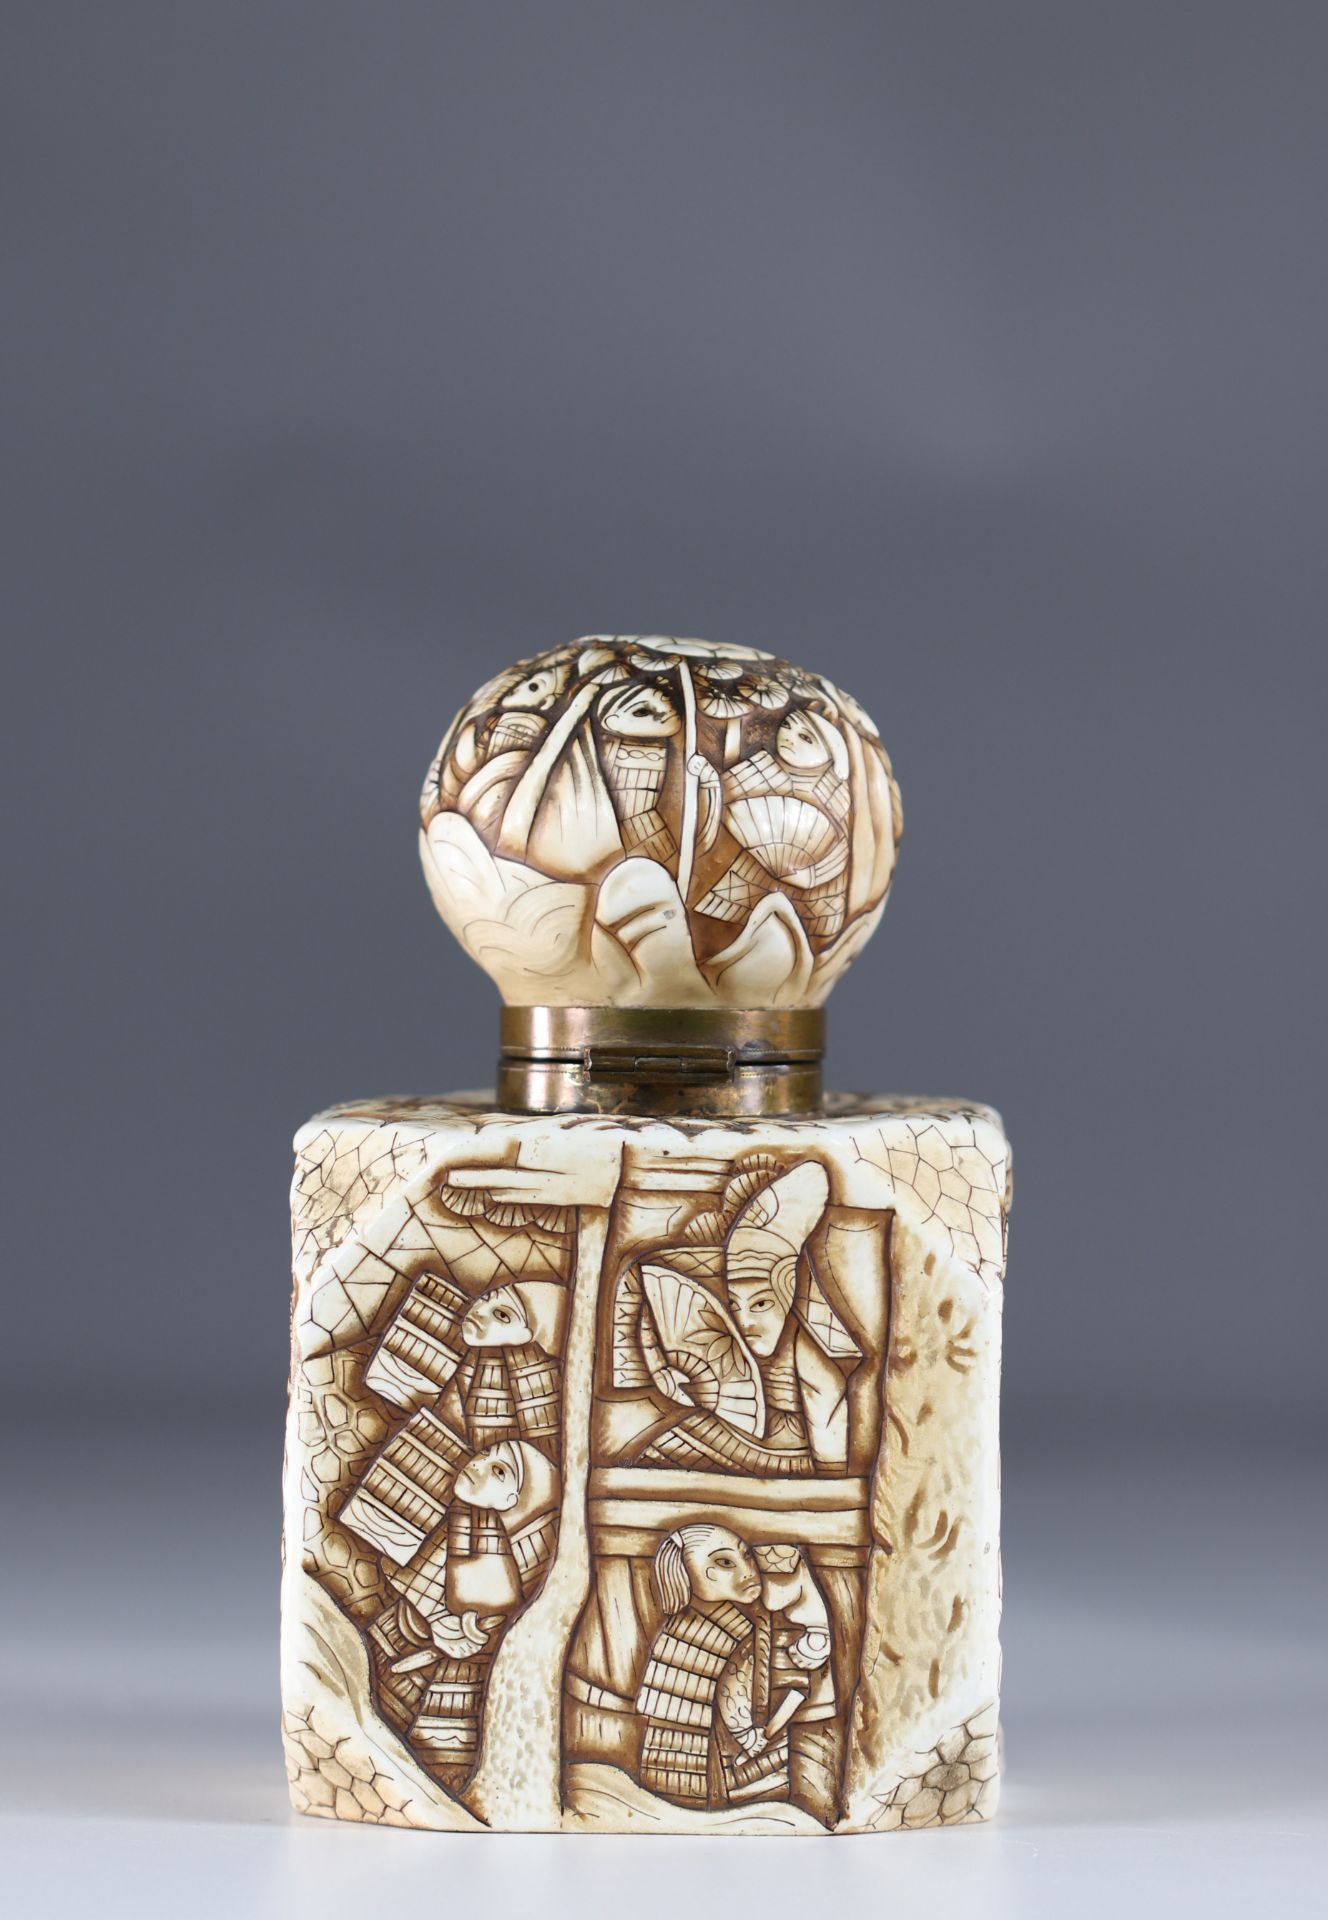 Japanese Art Deco porcelain inkwell decorated with warriors - Image 3 of 6